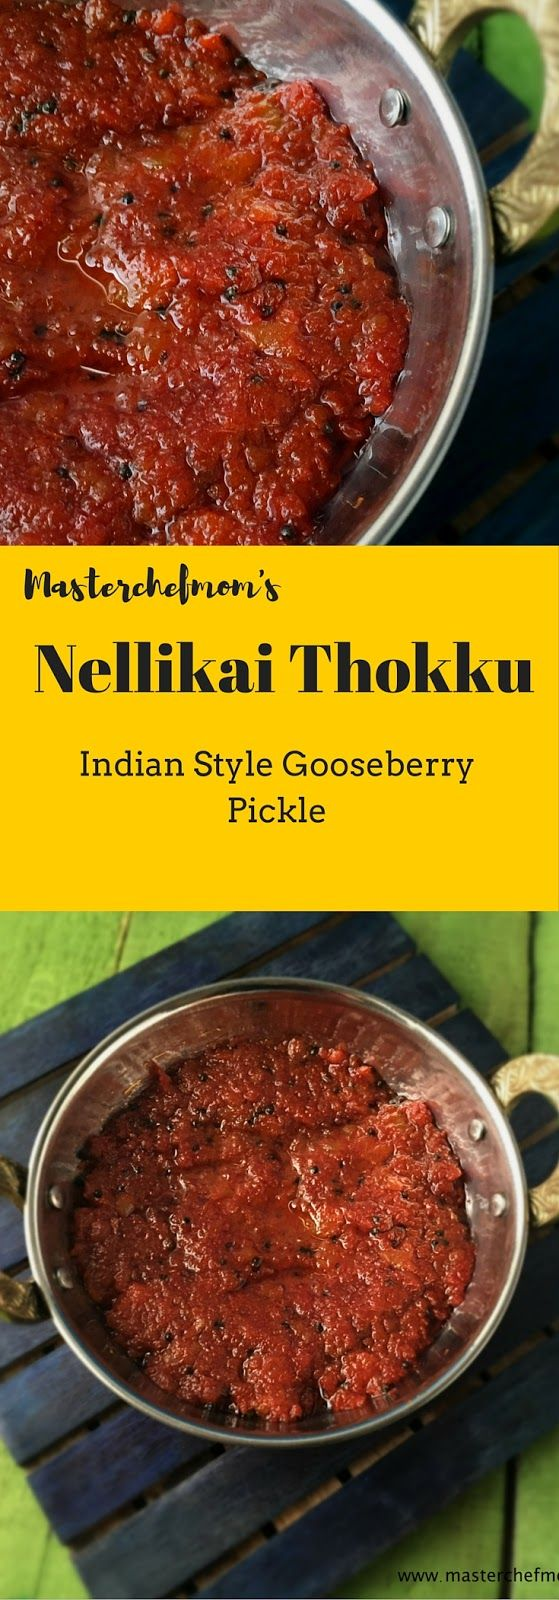 MASTERCHEFMOM: Nellikai Thokku | Gooseberry Relish | South Indian Style Amla Pickle | How to make Instant Gooseberry Pickle at Home | Easy and Quick Recipe